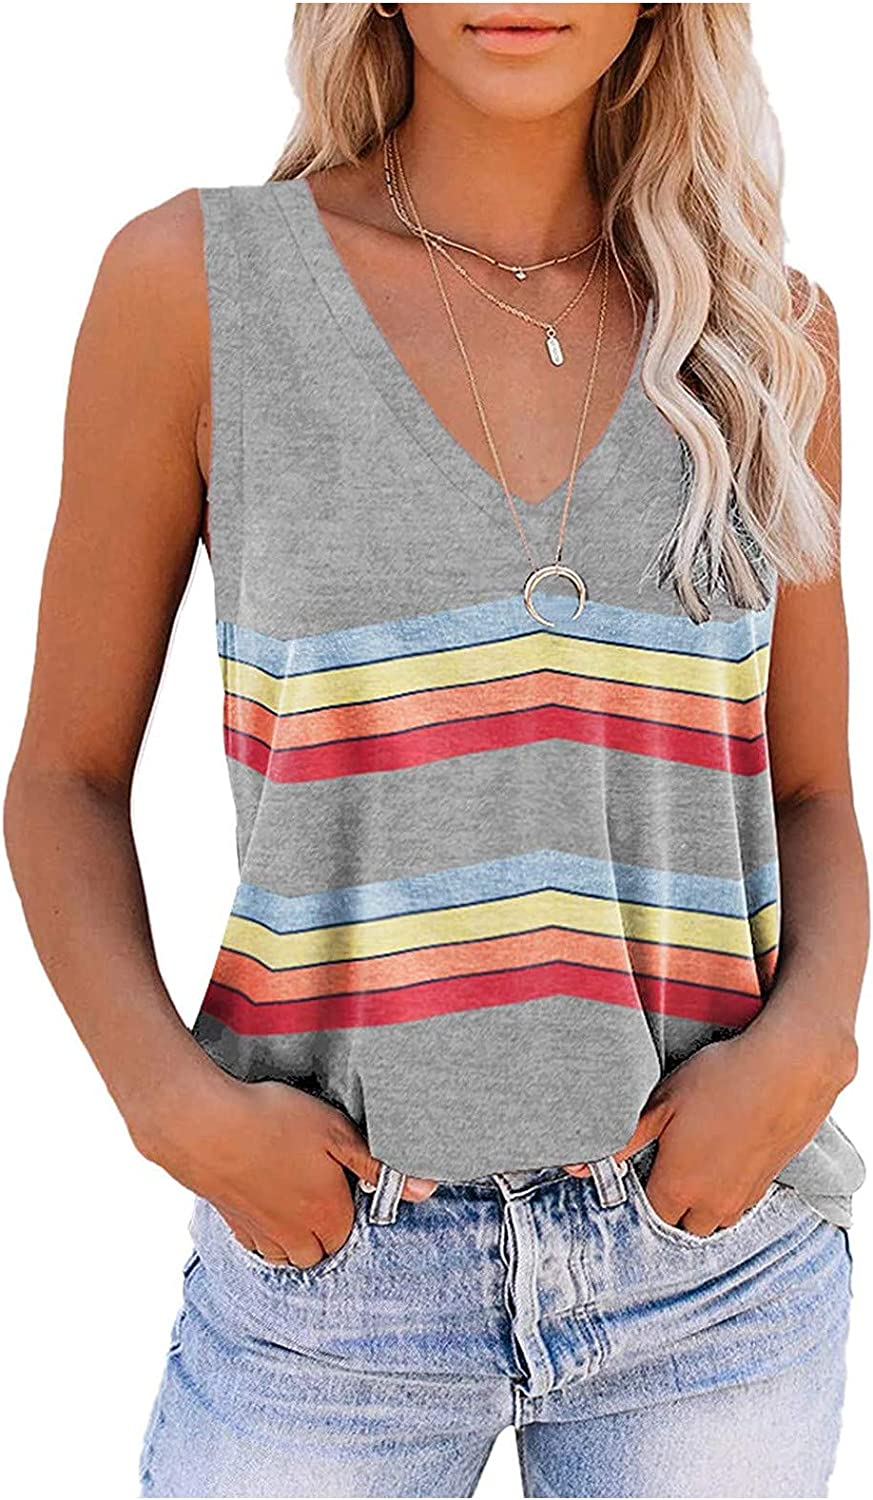 Tank Top for Women Summer,Womens Tank Tops Summer Sleeveless Tunic Tops Casual Loose Fit Blouse Tshirts Shirts